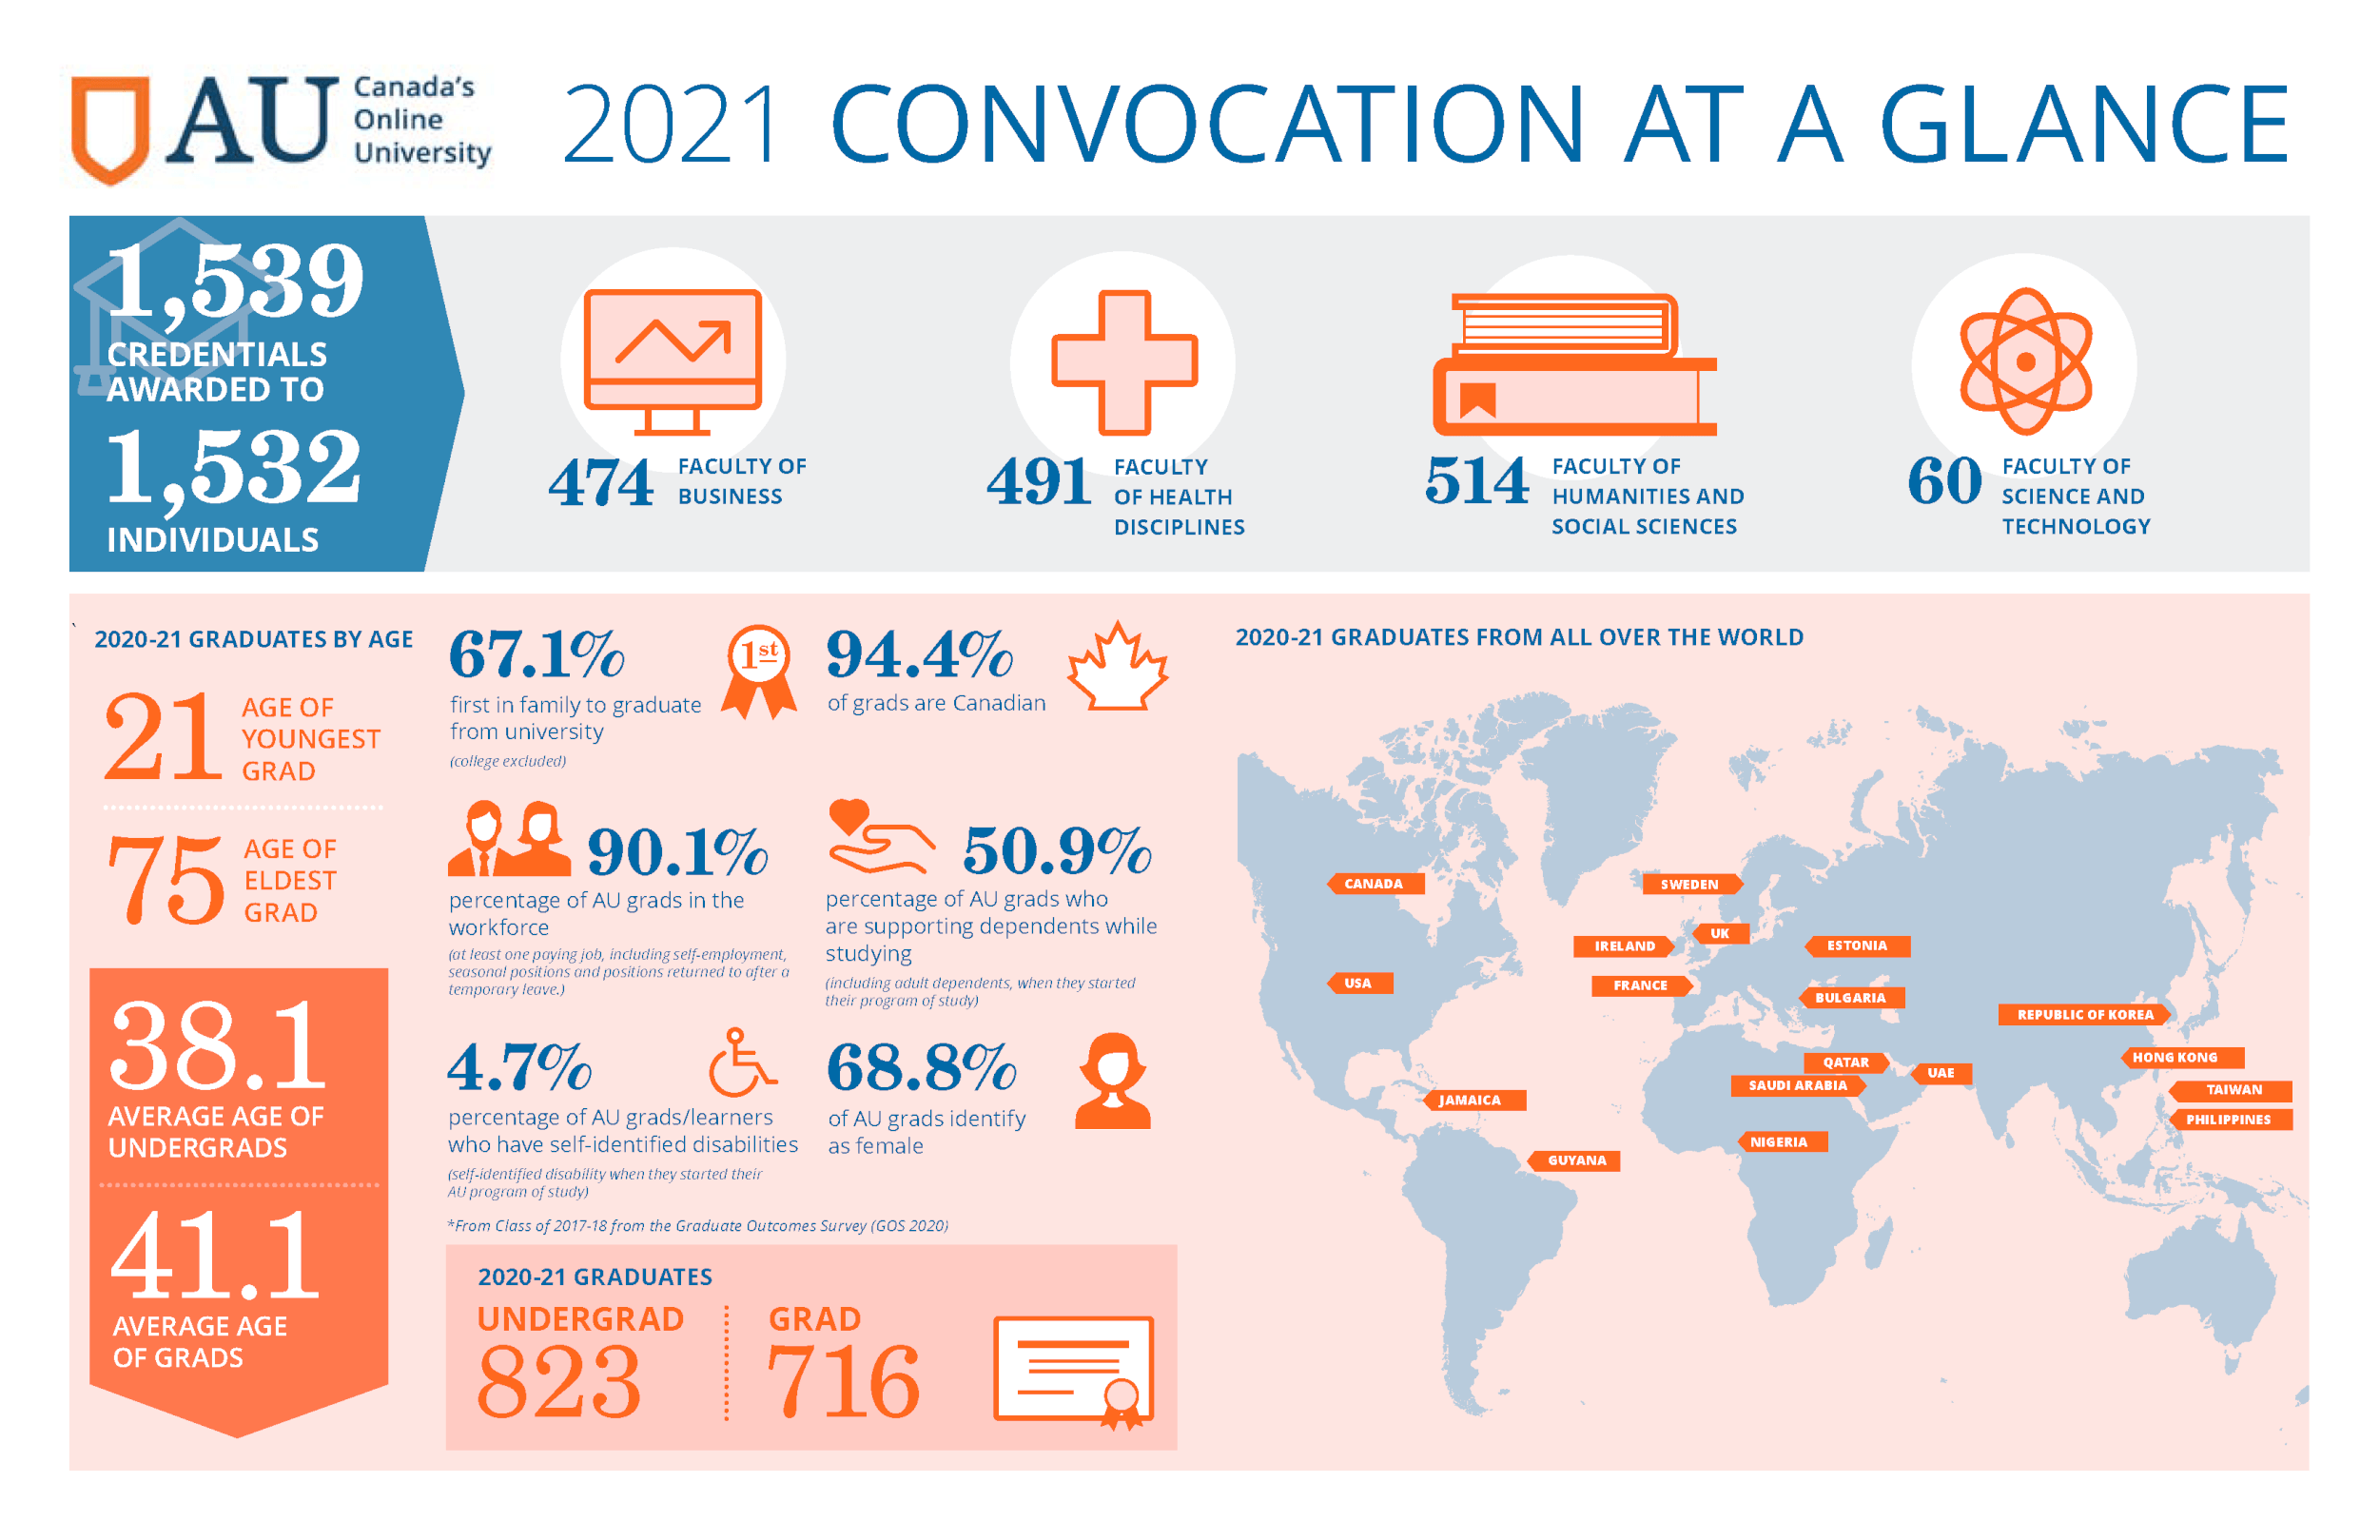 2021 convocation at a glance